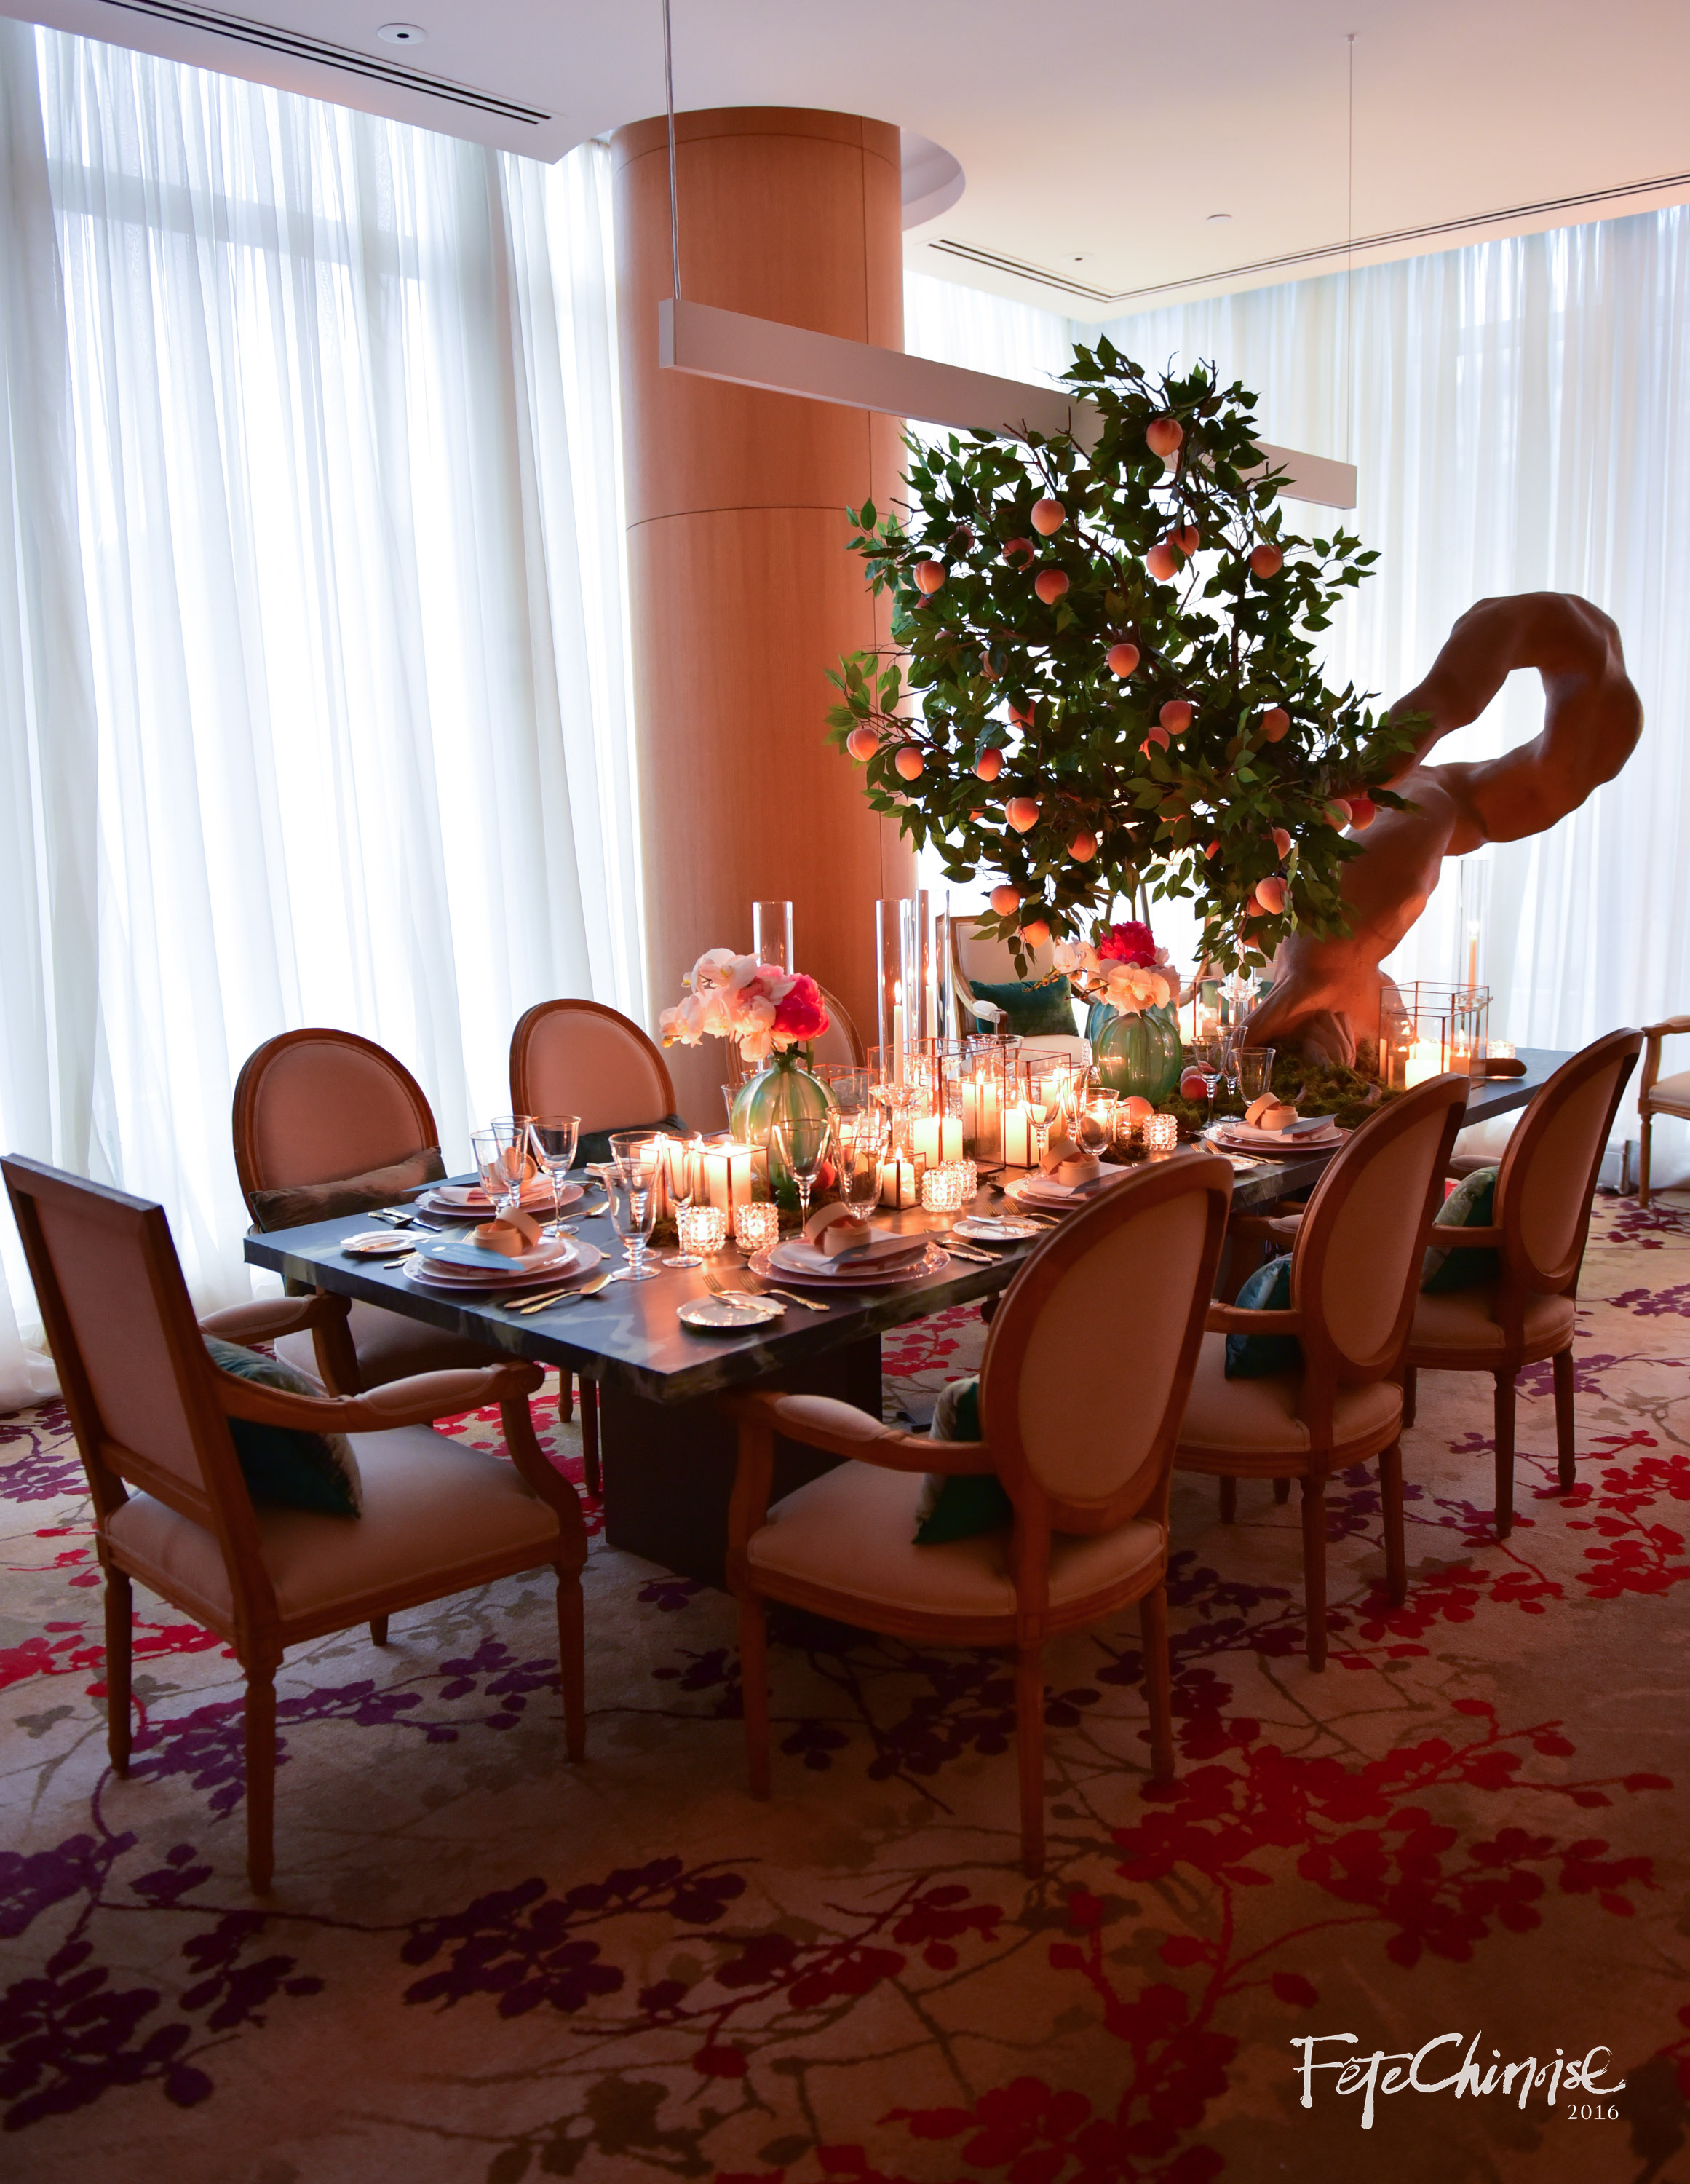 The Modern Birthday, designed by Marta Urbanowicz of Artam Design Inc. and Kim Miyama Events. This room created an intimate setting with the sense of longevity, symbolism, and cultural cues.